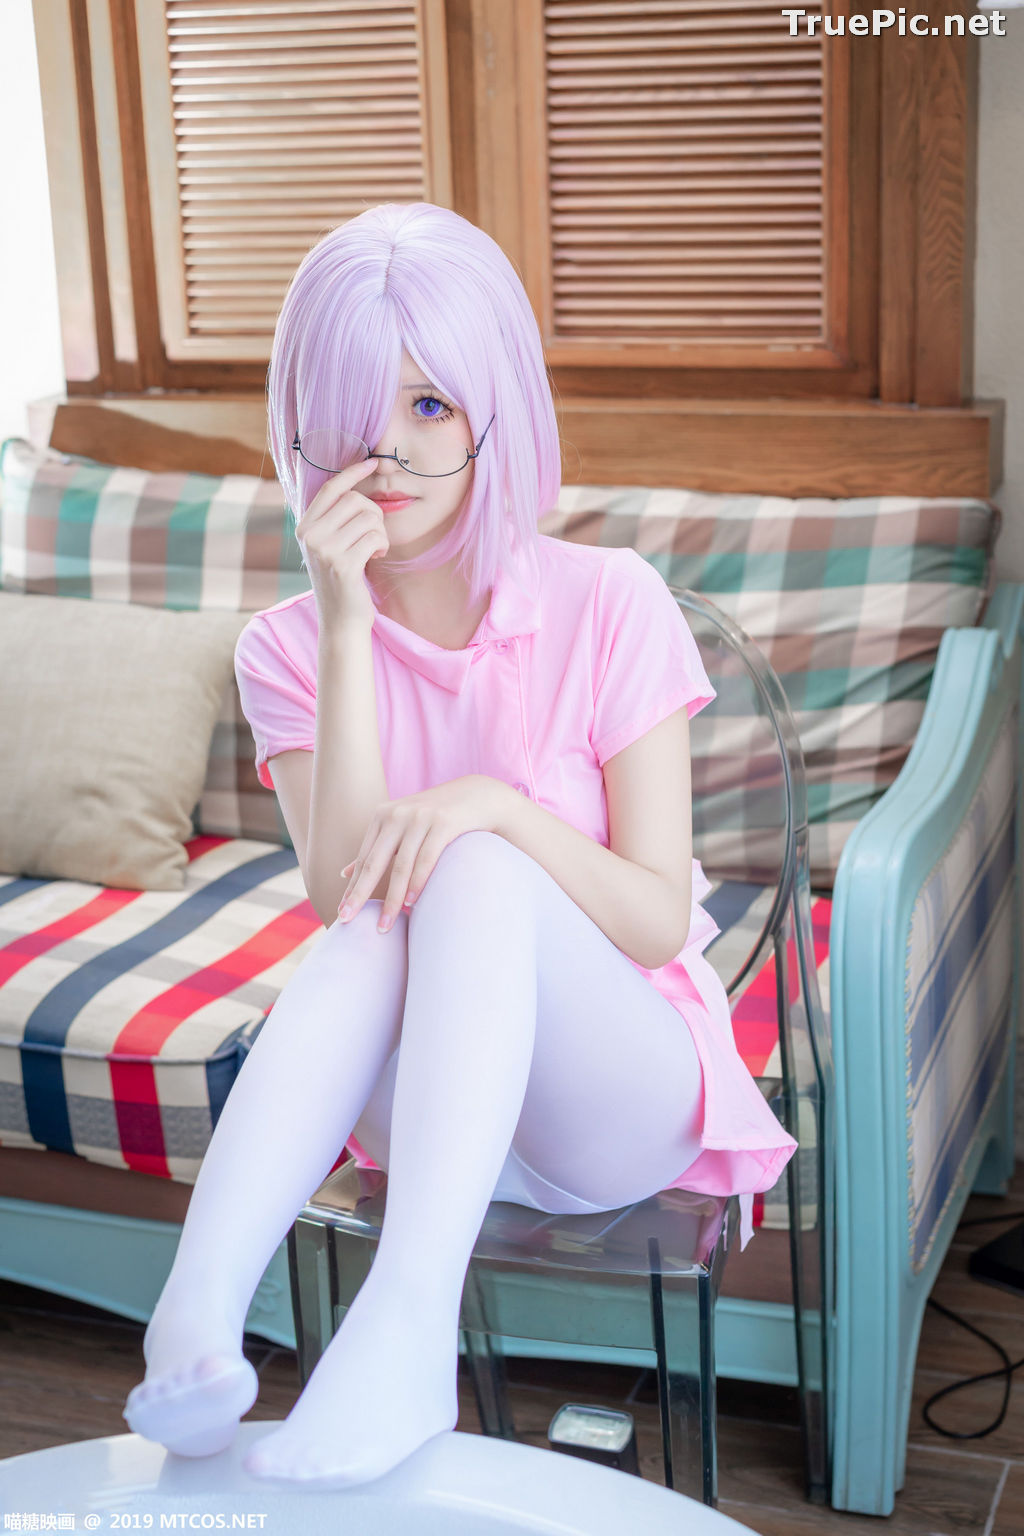 Image [MTCos] 喵糖映画 Vol.033 – Chinese Cute Model - Pink Nurse Cosplay - TruePic.net - Picture-6